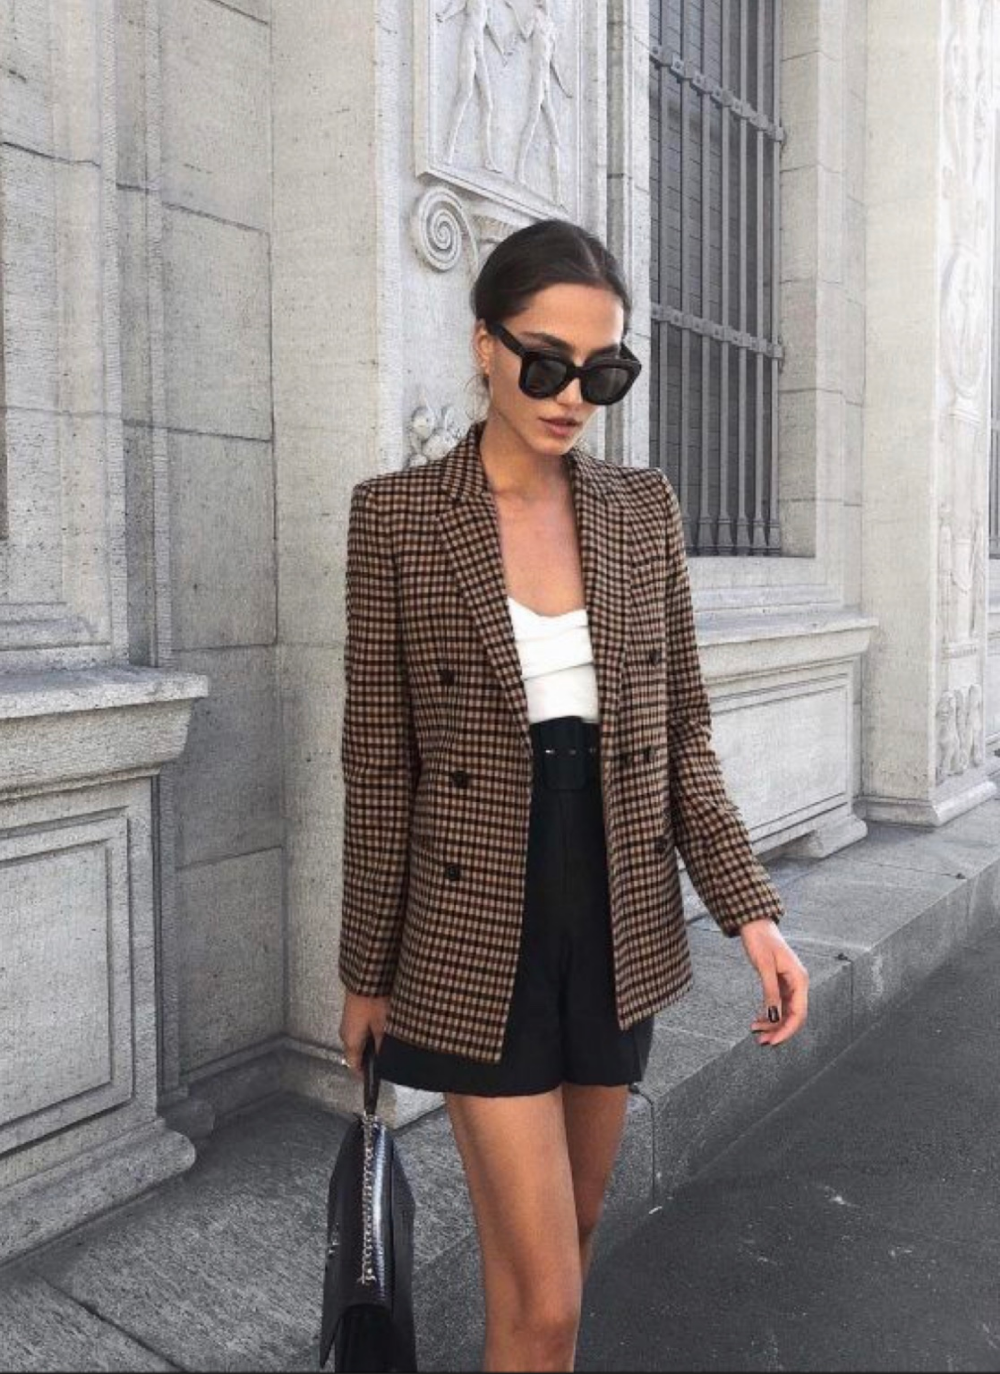 8 Secrets To Make Your Outfits Look Expensive